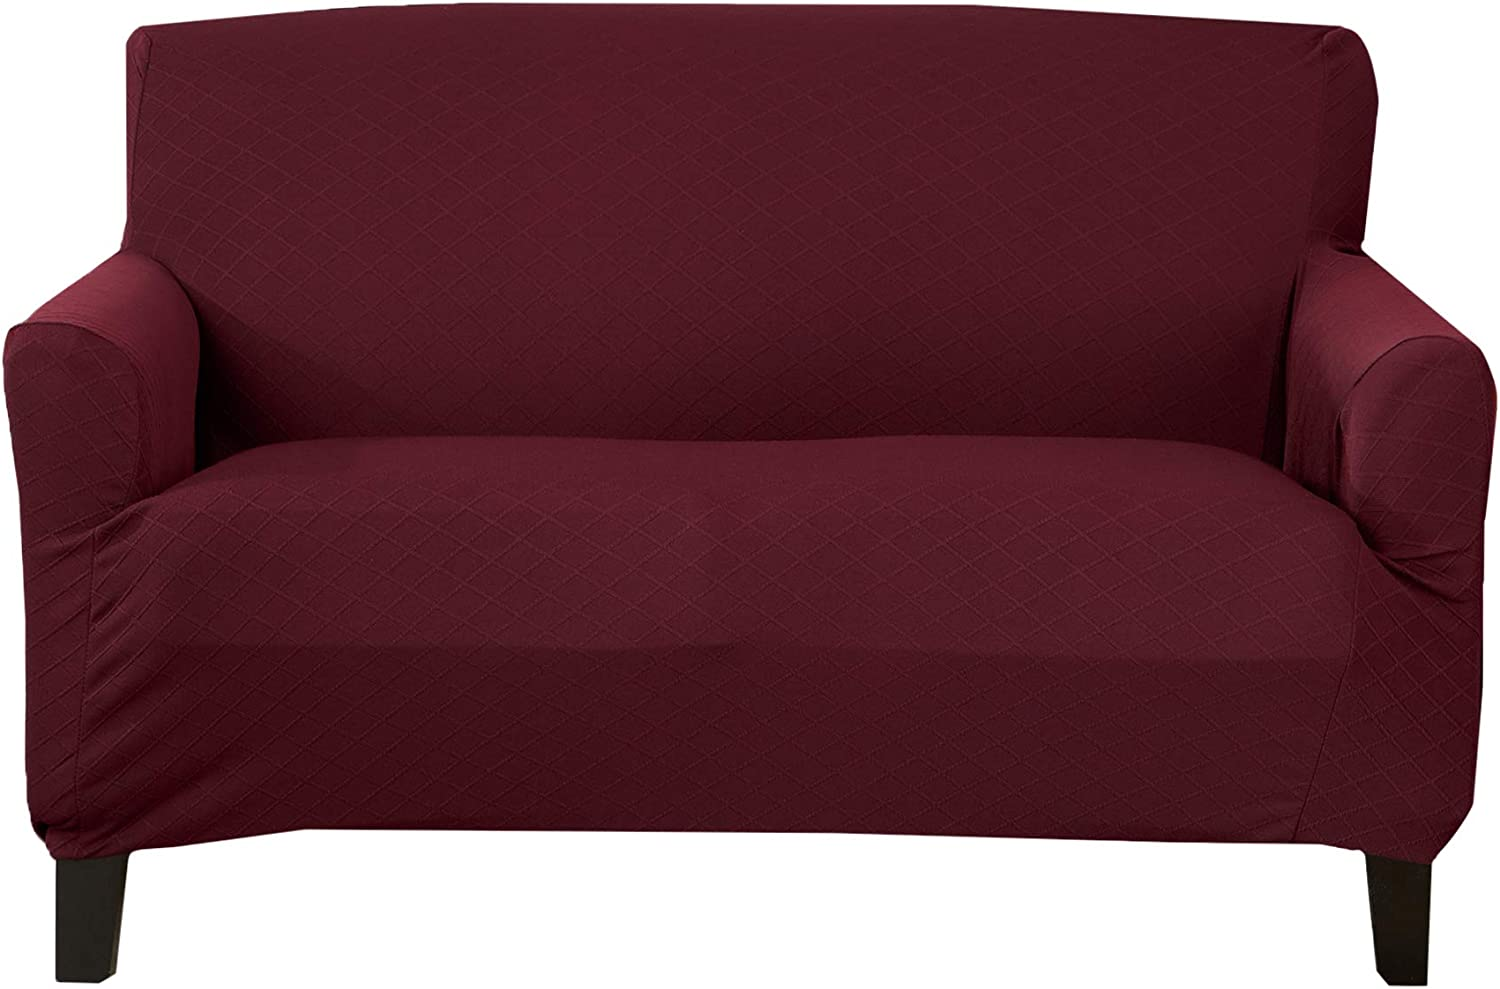 Textured Slipcover, Stretch Loveseat Slipcover. Decorative Cord/Rope Form Fit, Slip Resistant, Strapless Slipcover. Saria Collection (Love Seat, Burgundy)